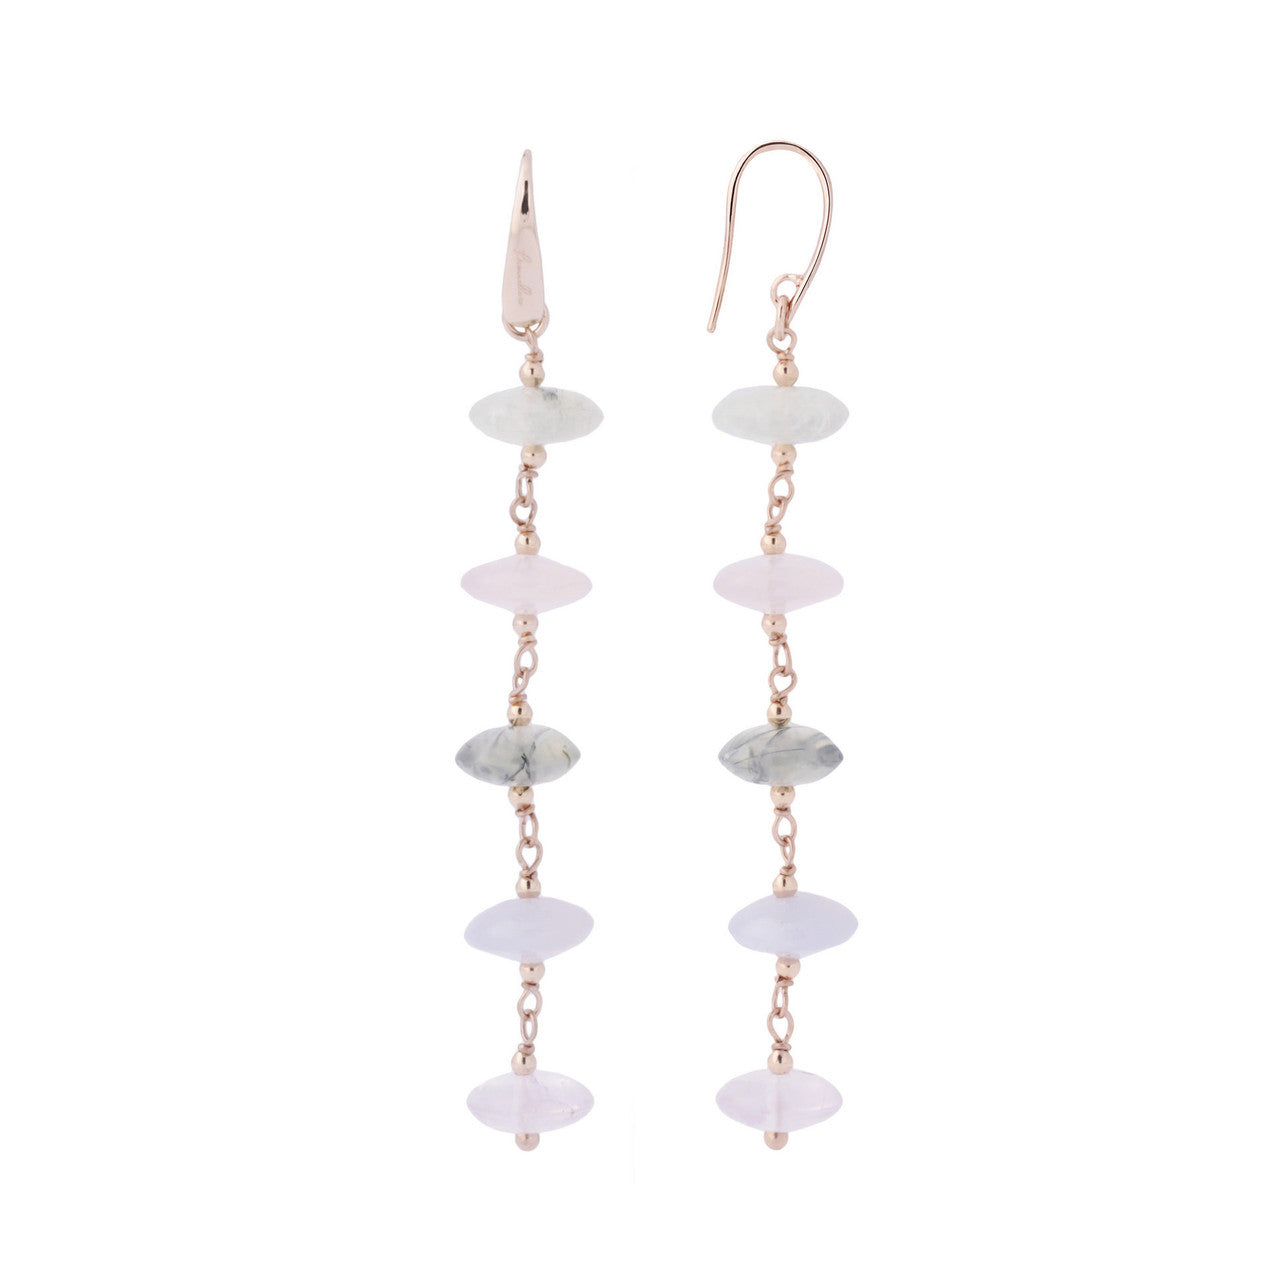 riah earring earrings fashion dangling natural stone products